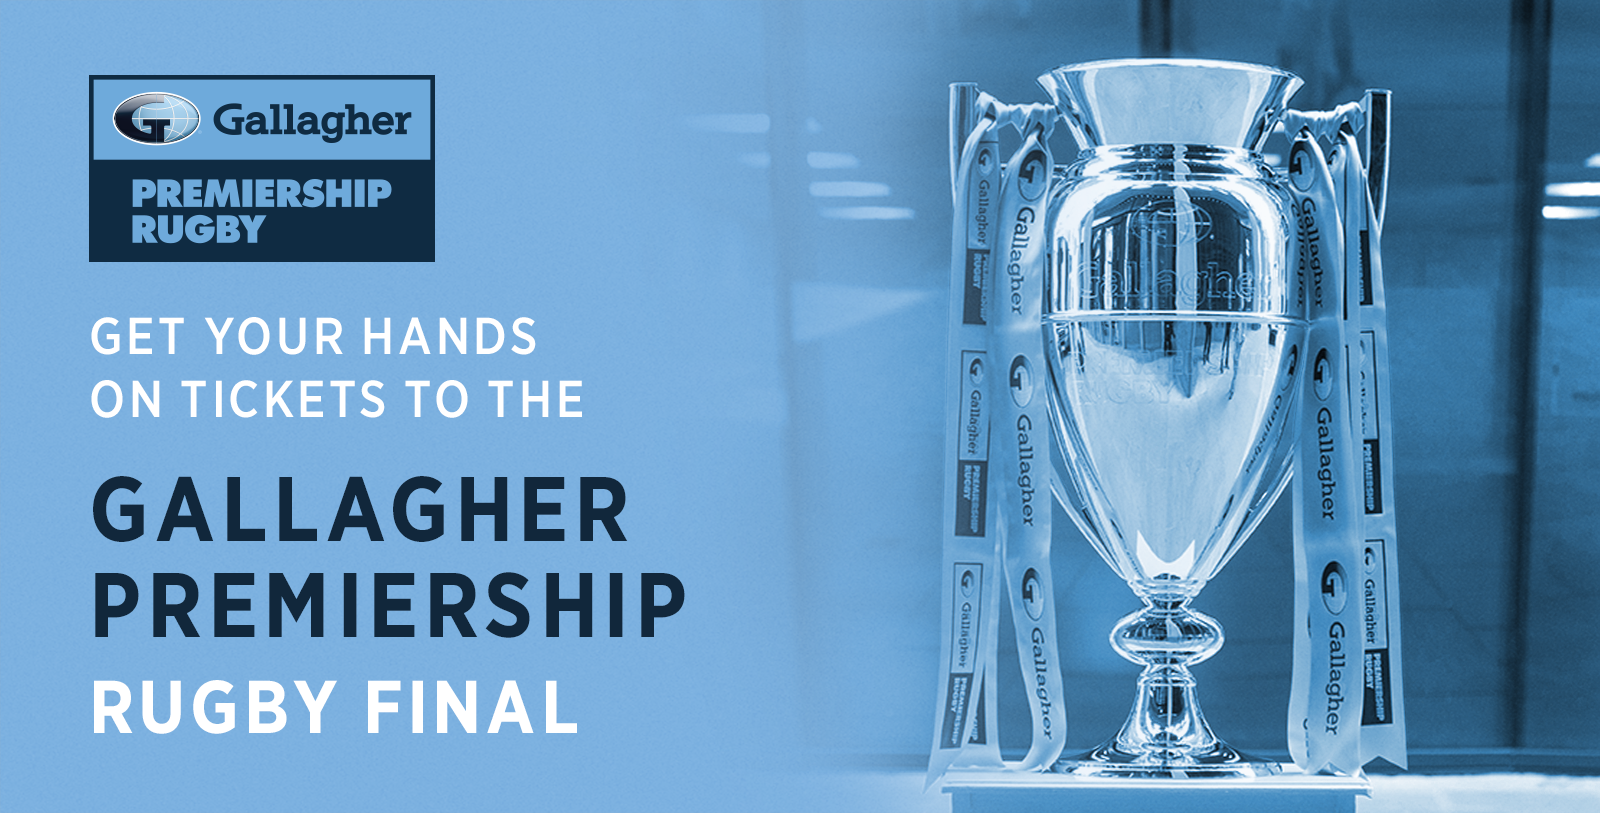 4329eca5111 Get your hands on tickets to the Gallagher Premiership Rugby Final when you  buy Gallagher Home Insurance